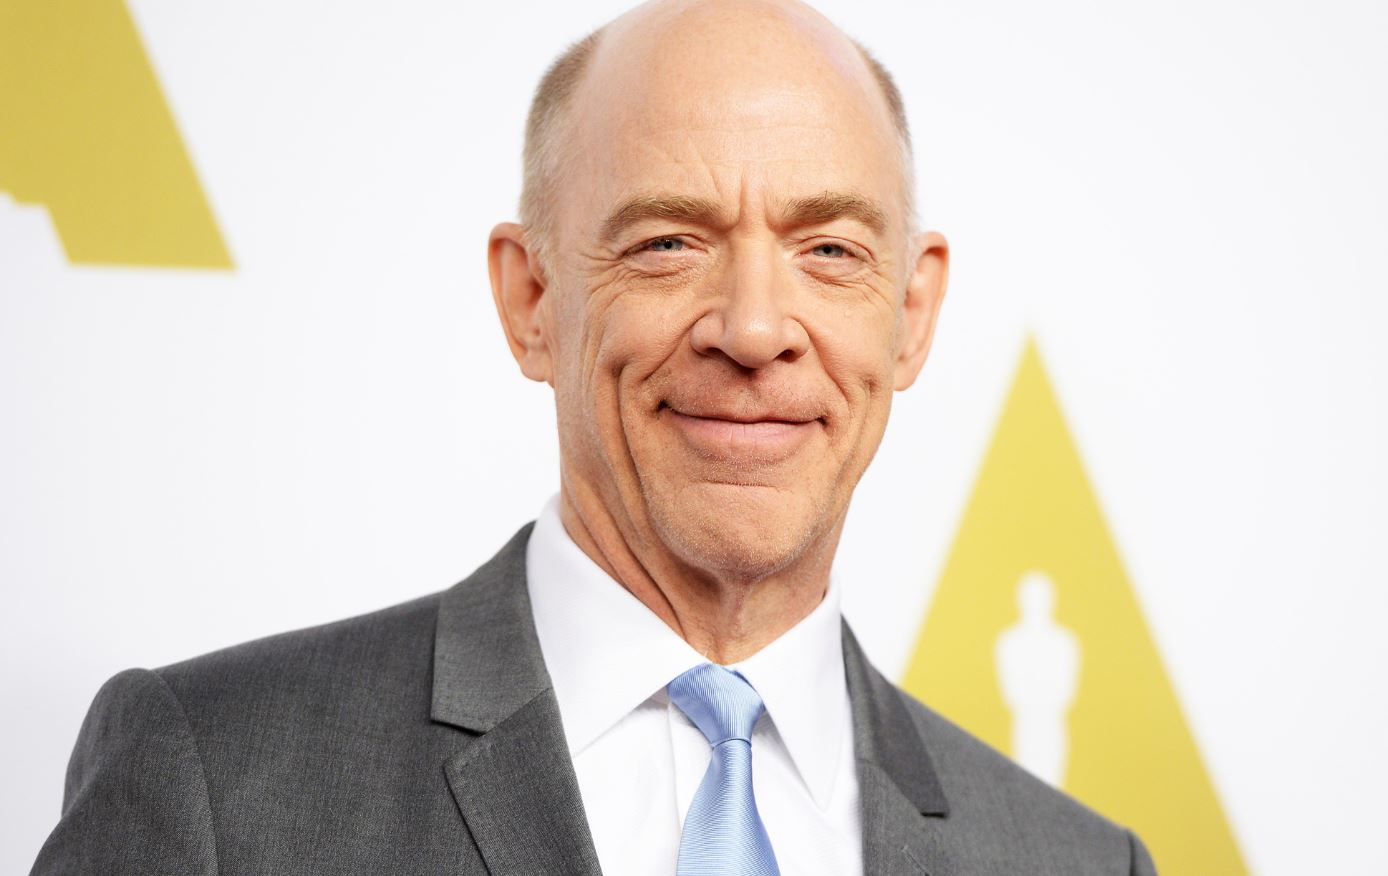 J.K. Simmons Famous People From Michigan